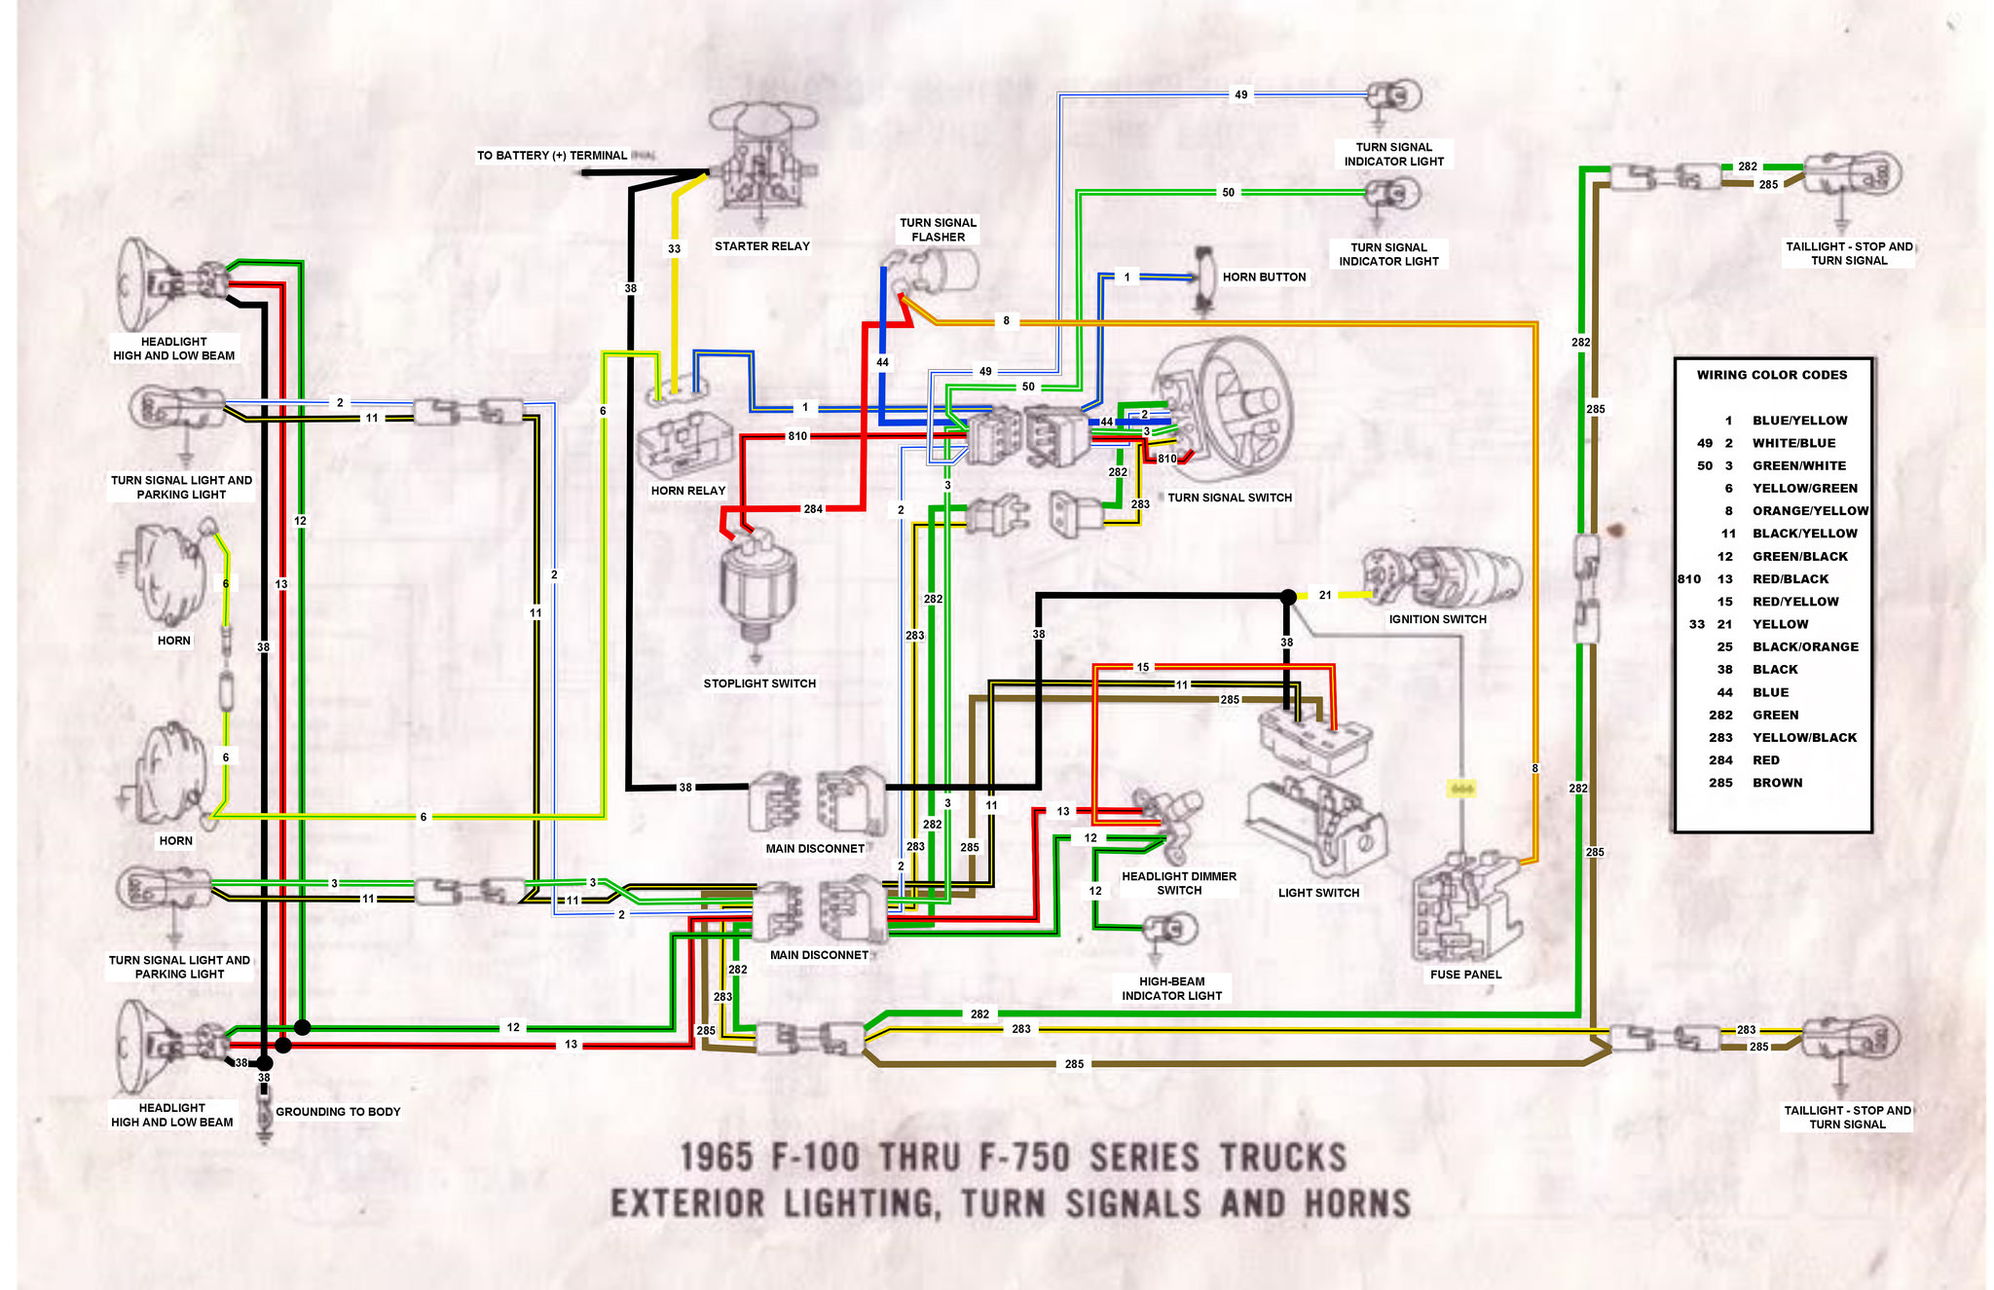 hight resolution of ford f650 wiring schematic ignition wiring library 2001 ford f750 vin number 2001 ford f750 ignition wire schematic